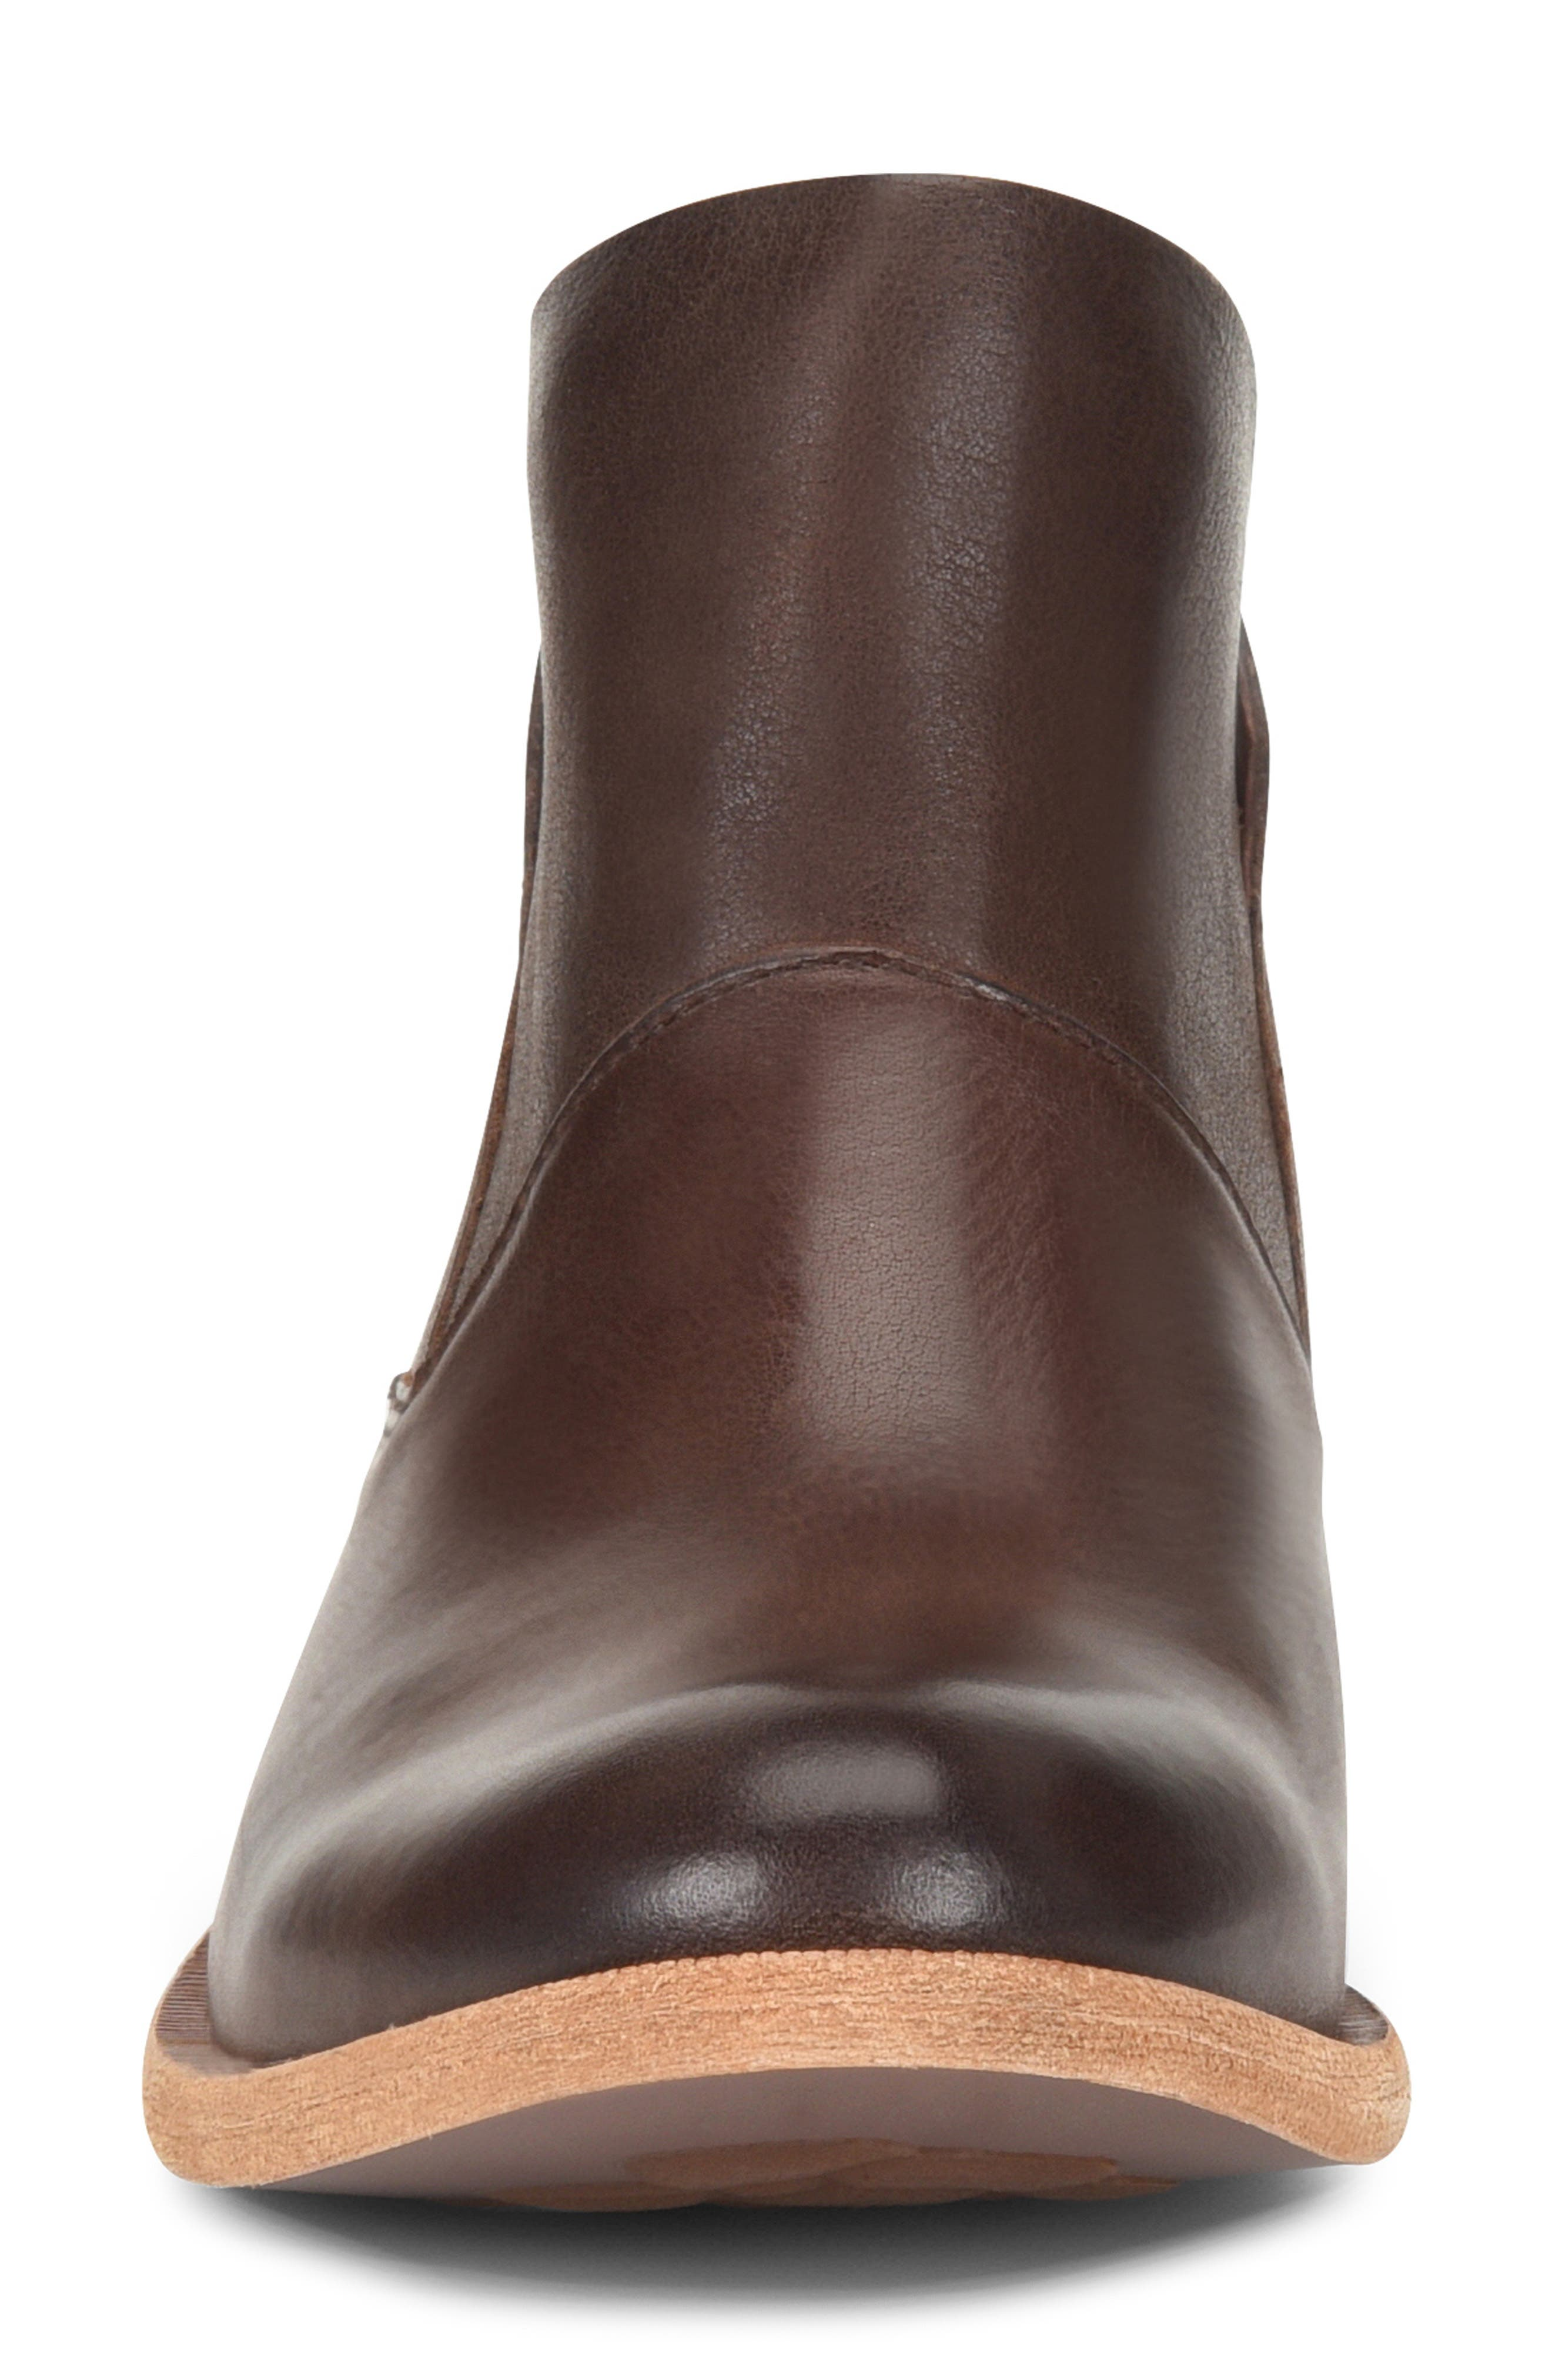 Ryder Ankle Boot,                             Alternate thumbnail 4, color,                             DARK BROWN LEATHER